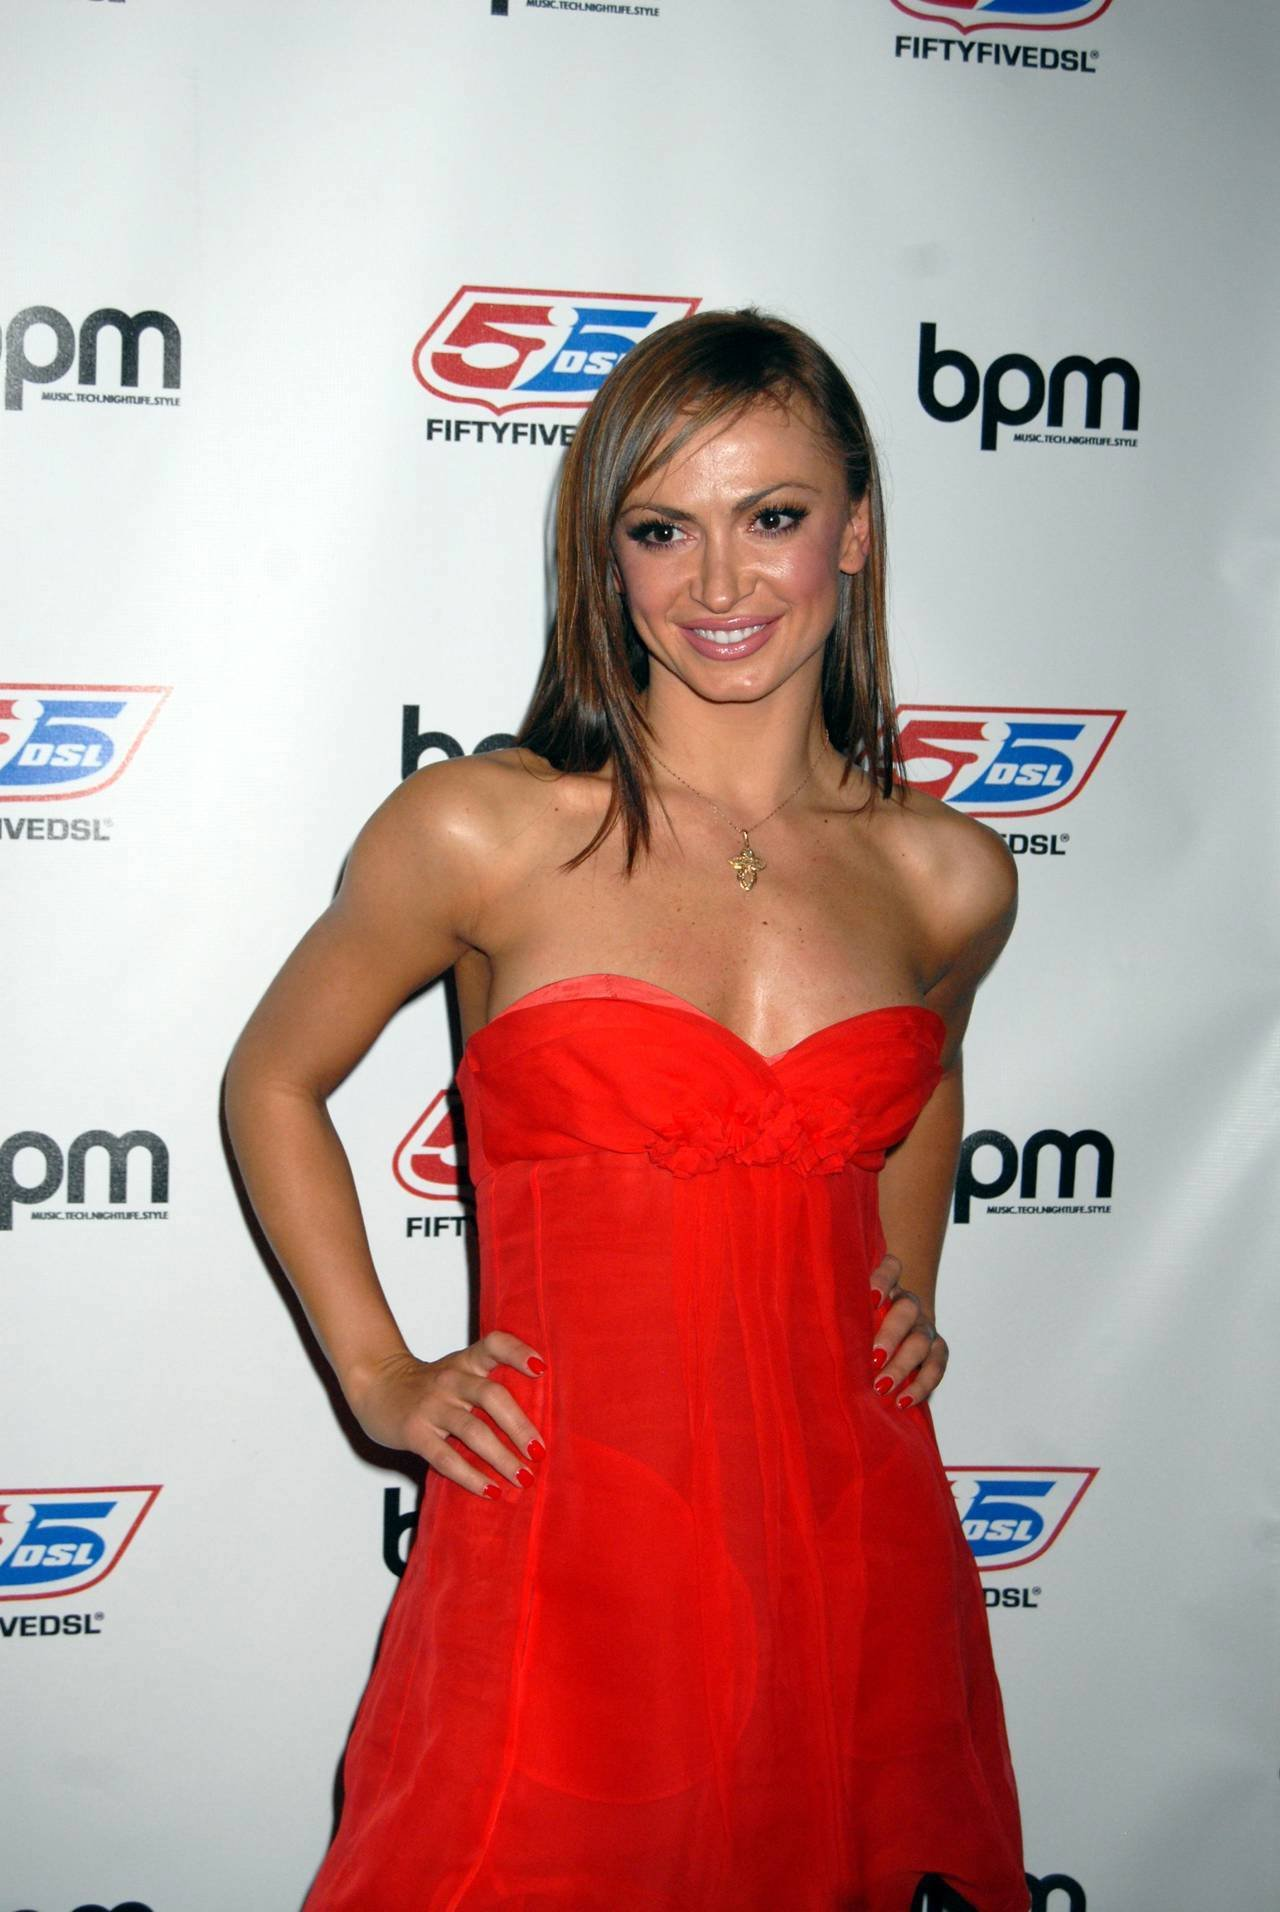 56235_karina_smirnoff_BPM_Club_Magazine_12th_anniversary_party_LA-jul162008_04_122_240lo.jpg